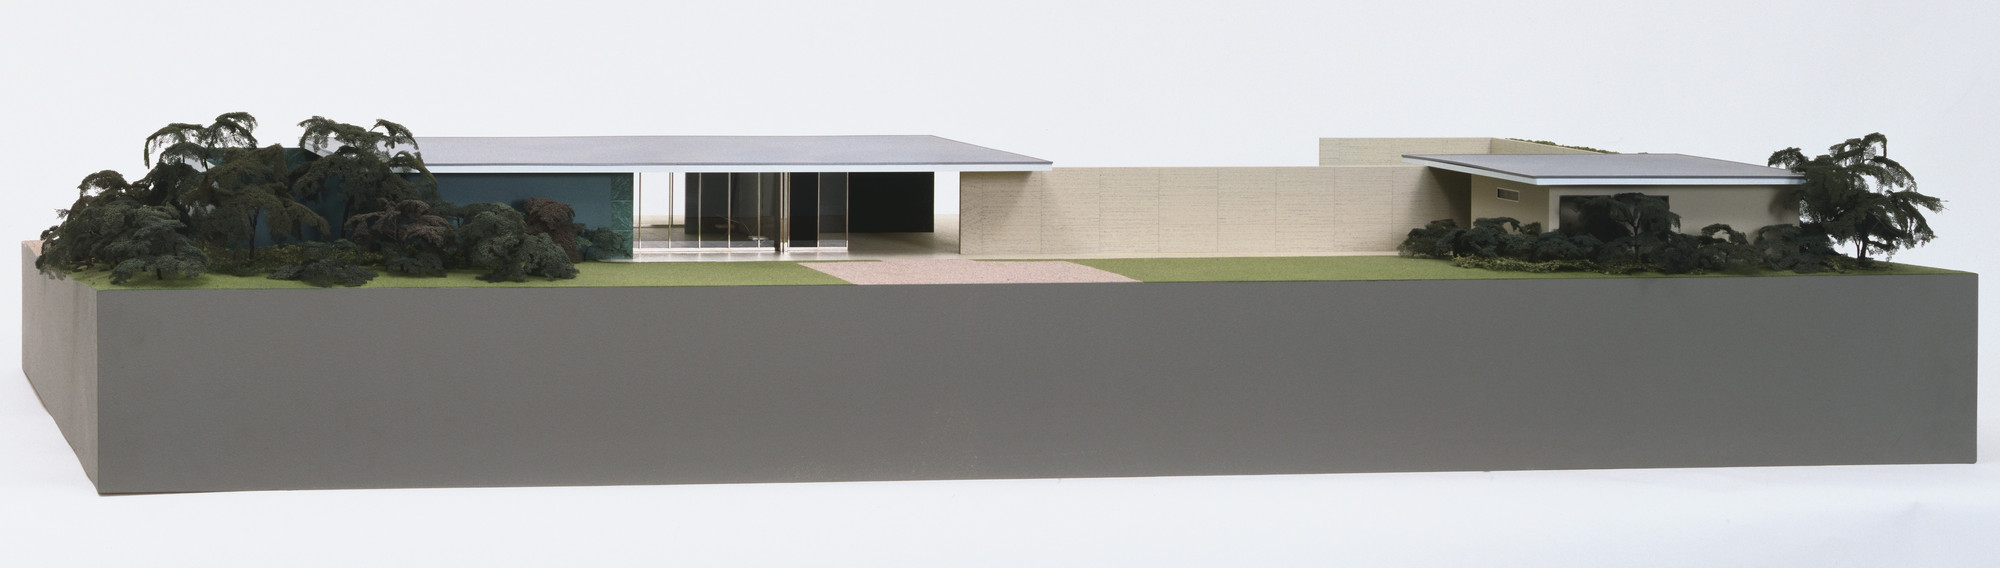 Ludwig Mies van der Rohe. German Pavilion, International Exposition, Barcelona, Spain. 1928-29